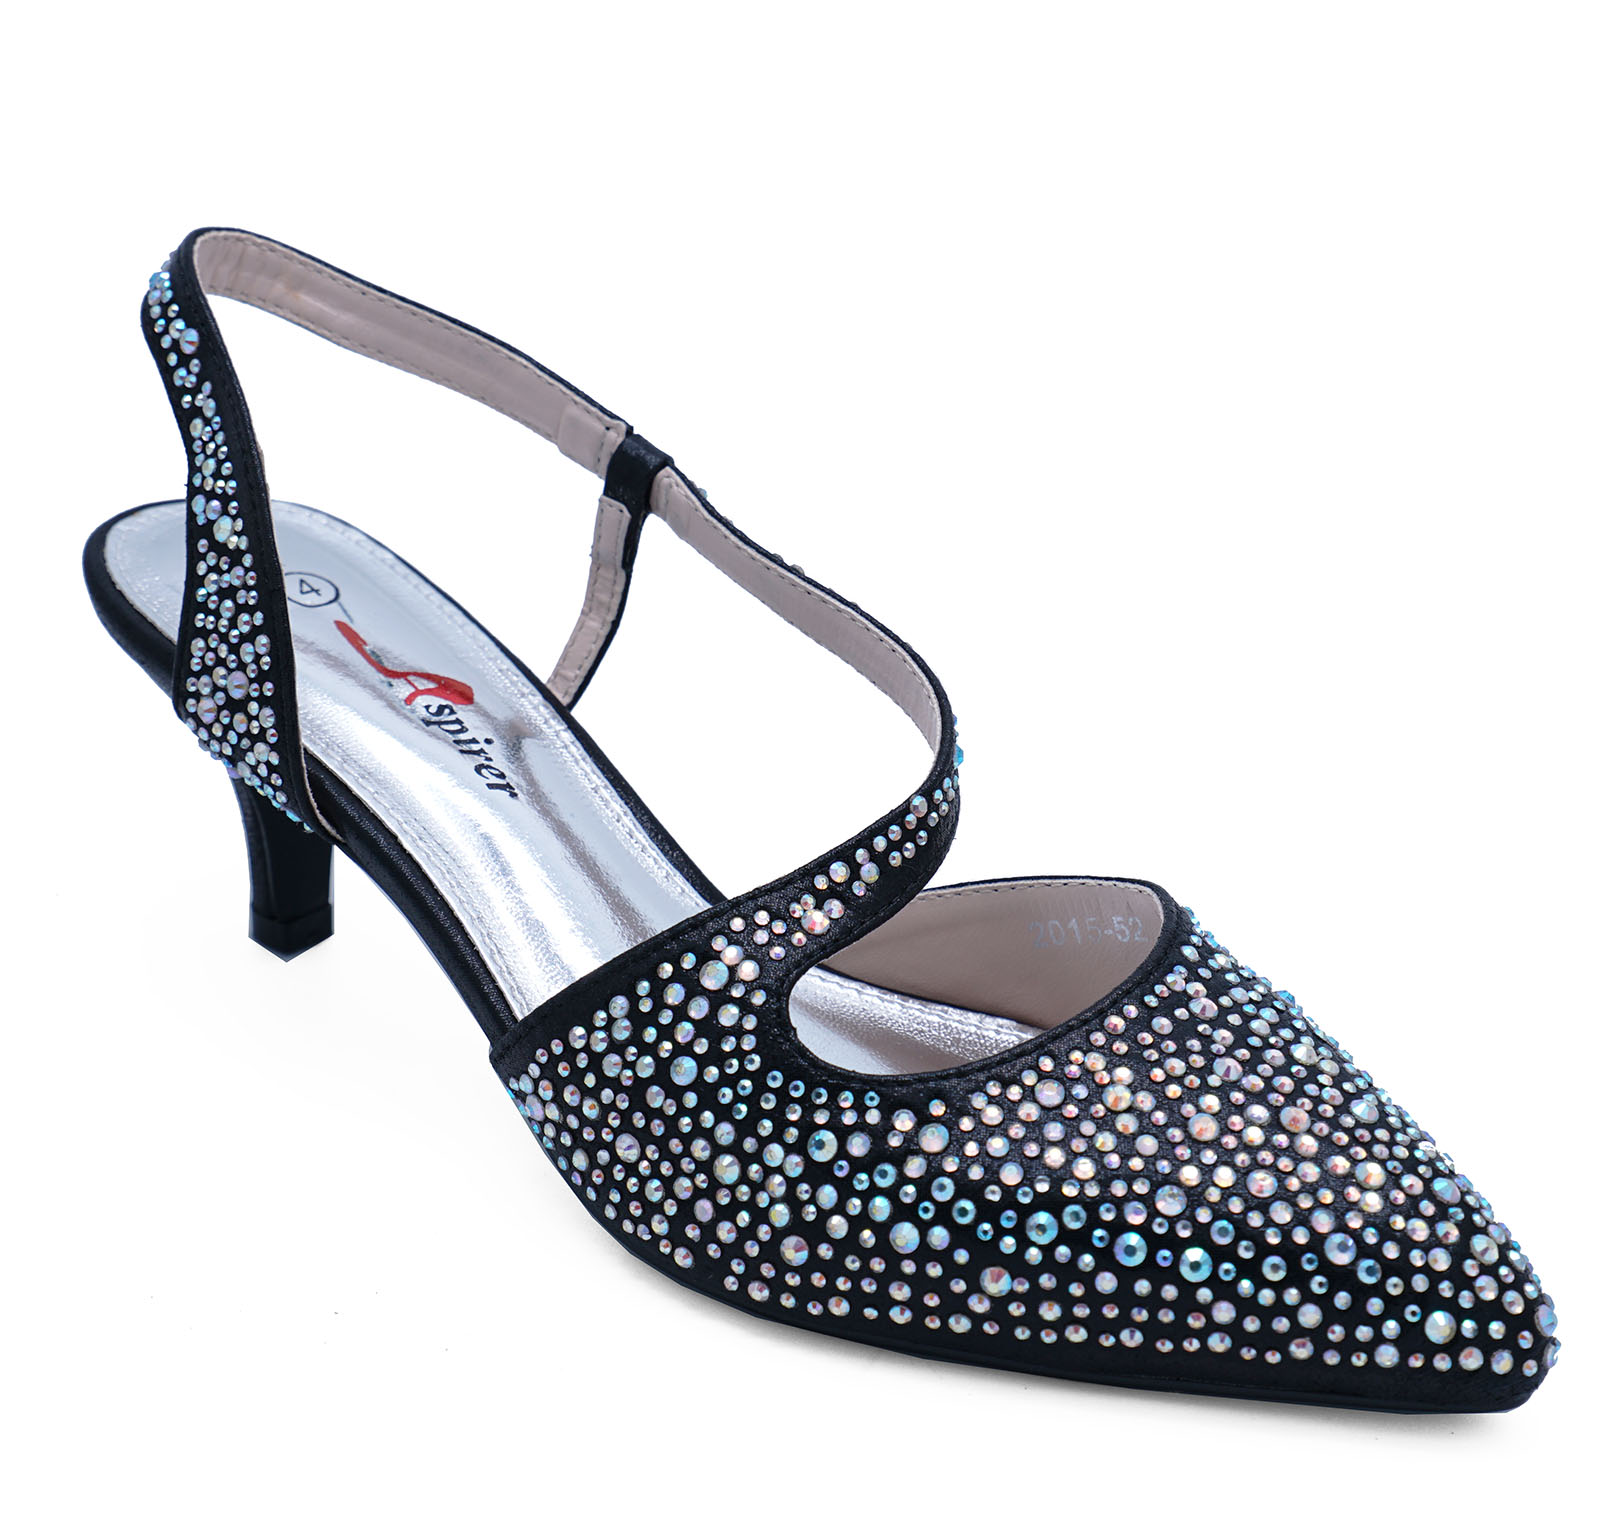 effece54292d Details about WOMENS BLACK LOW-HEEL SLINGBACK DIAMANTE ELEGANT PARTY  EVENING SHOES SIZES 3-8